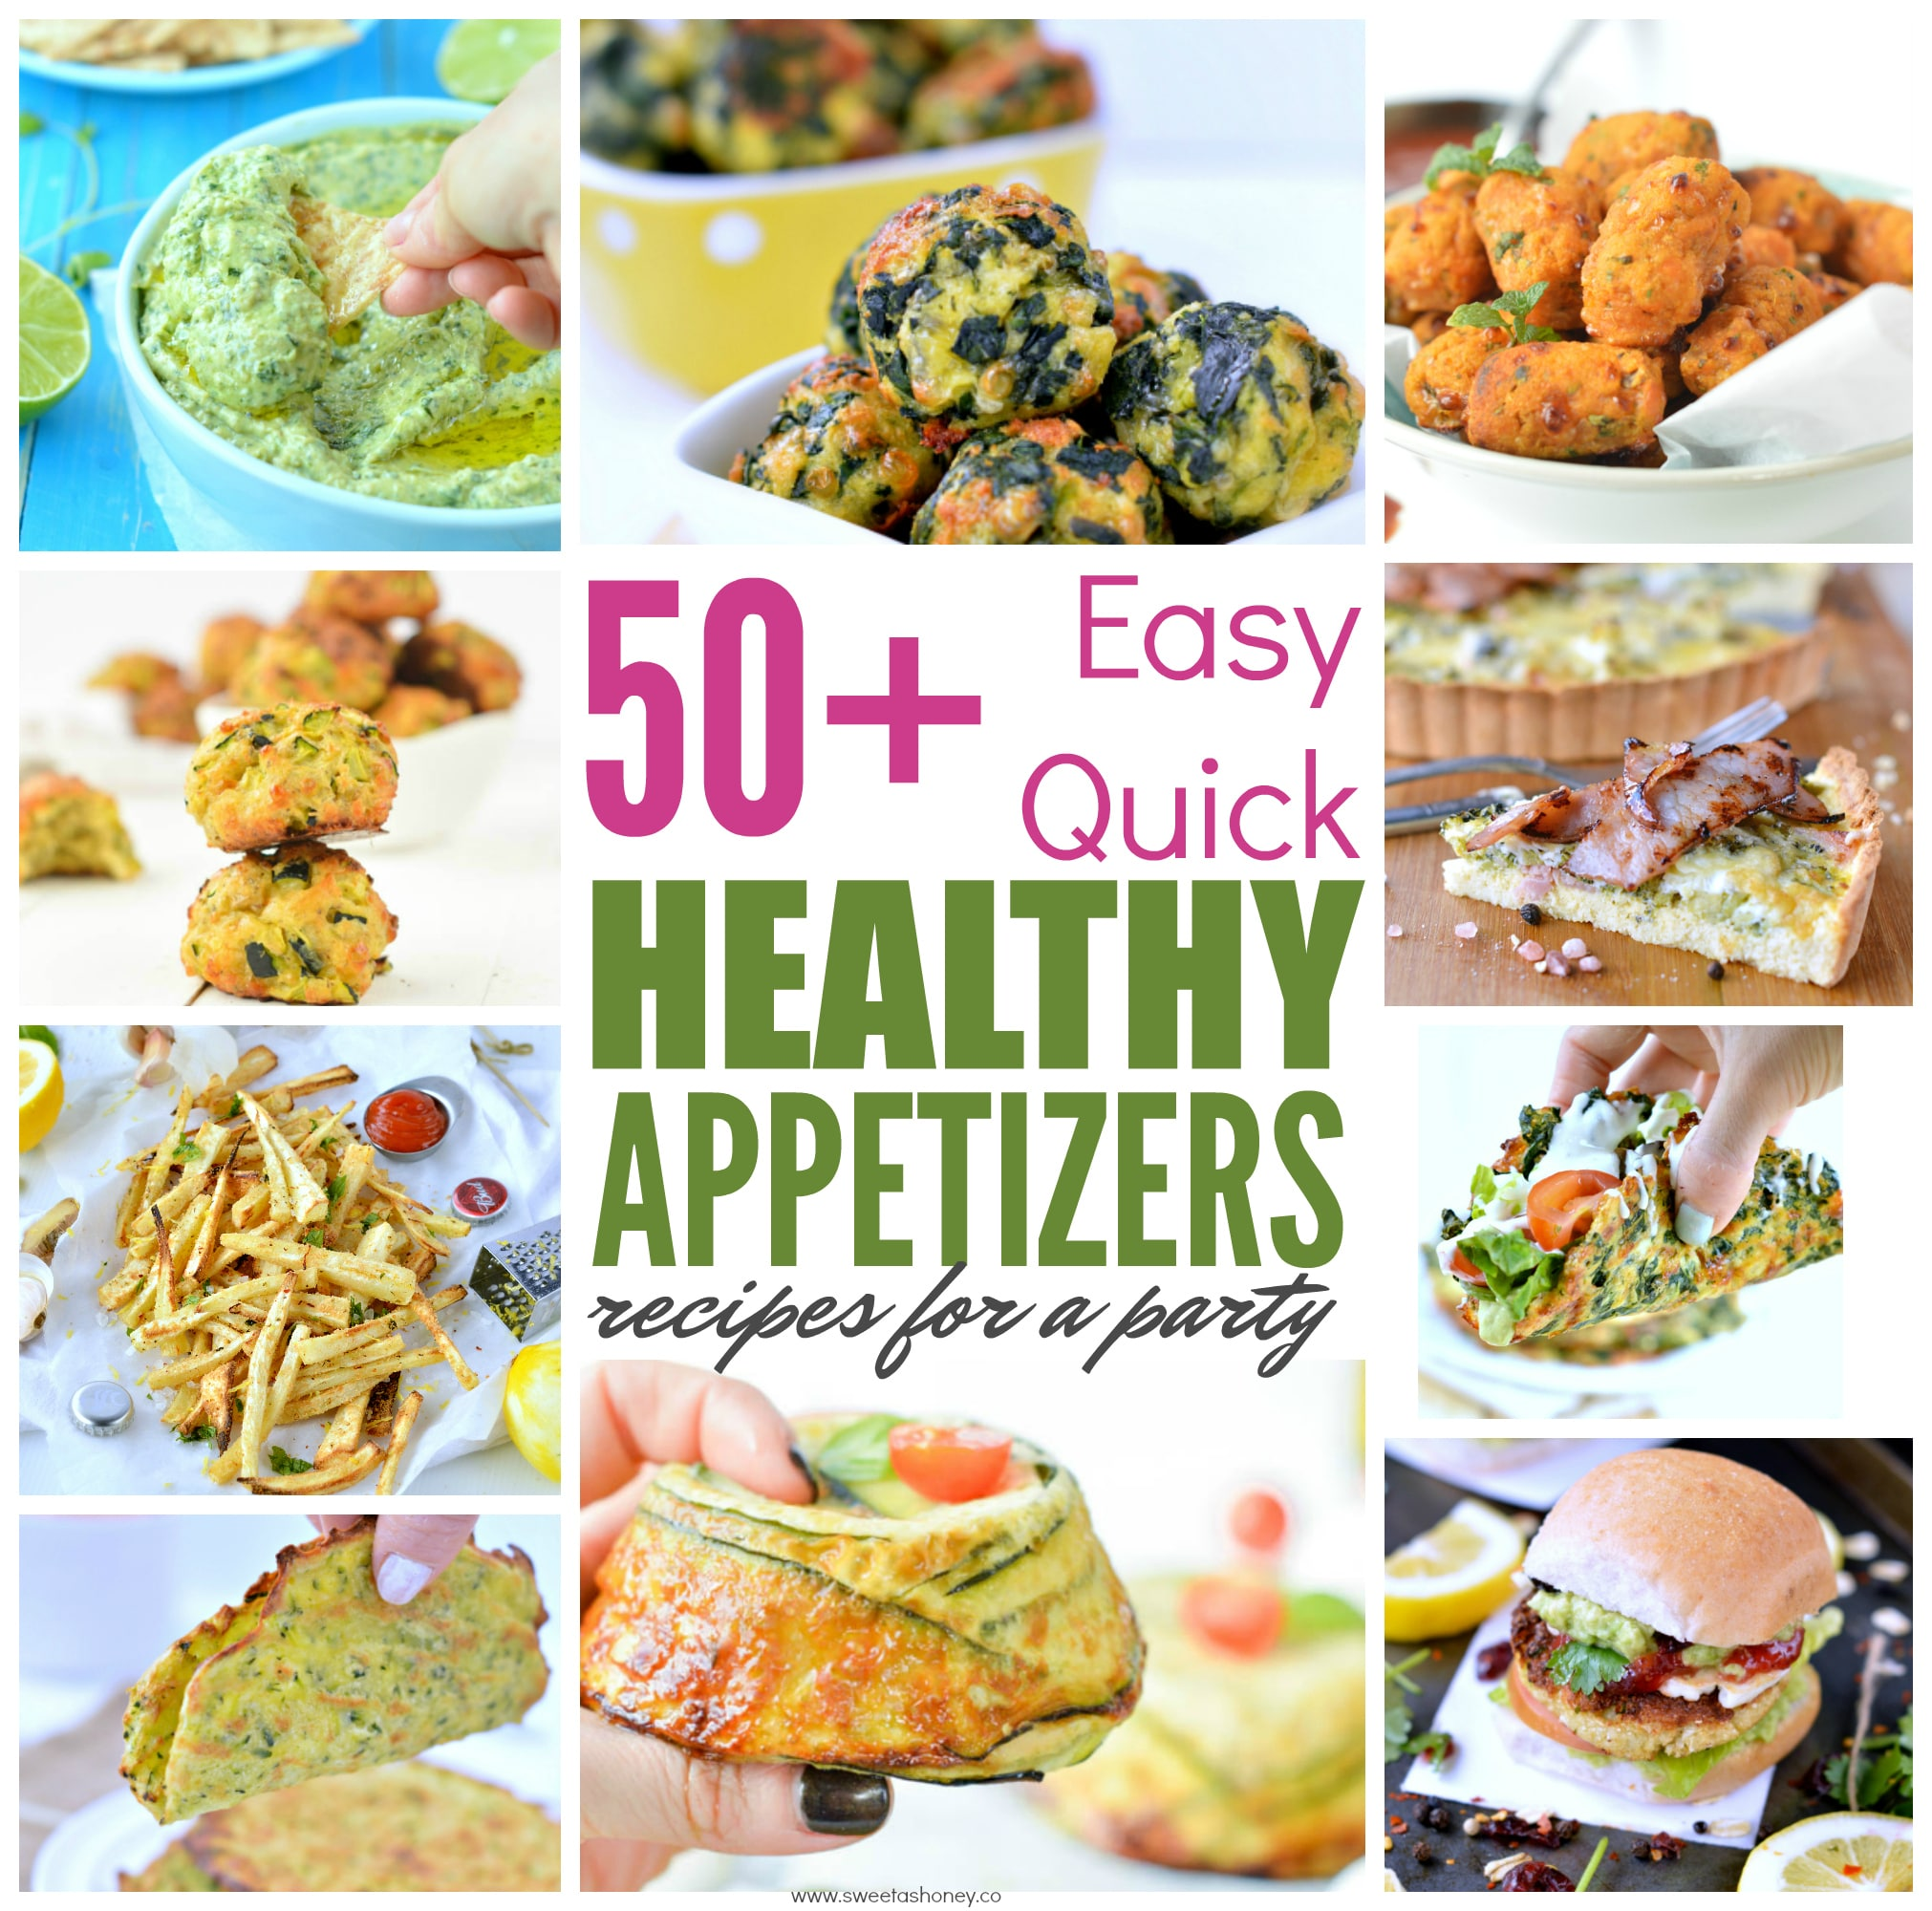 Easy healthy appetizers are the best way to feed a crowd with a variety of delicious quick finger foods that everyone can enjoy. In this easy healthy appetizers gathering, I'll guide you through the steps to create easy party foods to entertain the smart way.